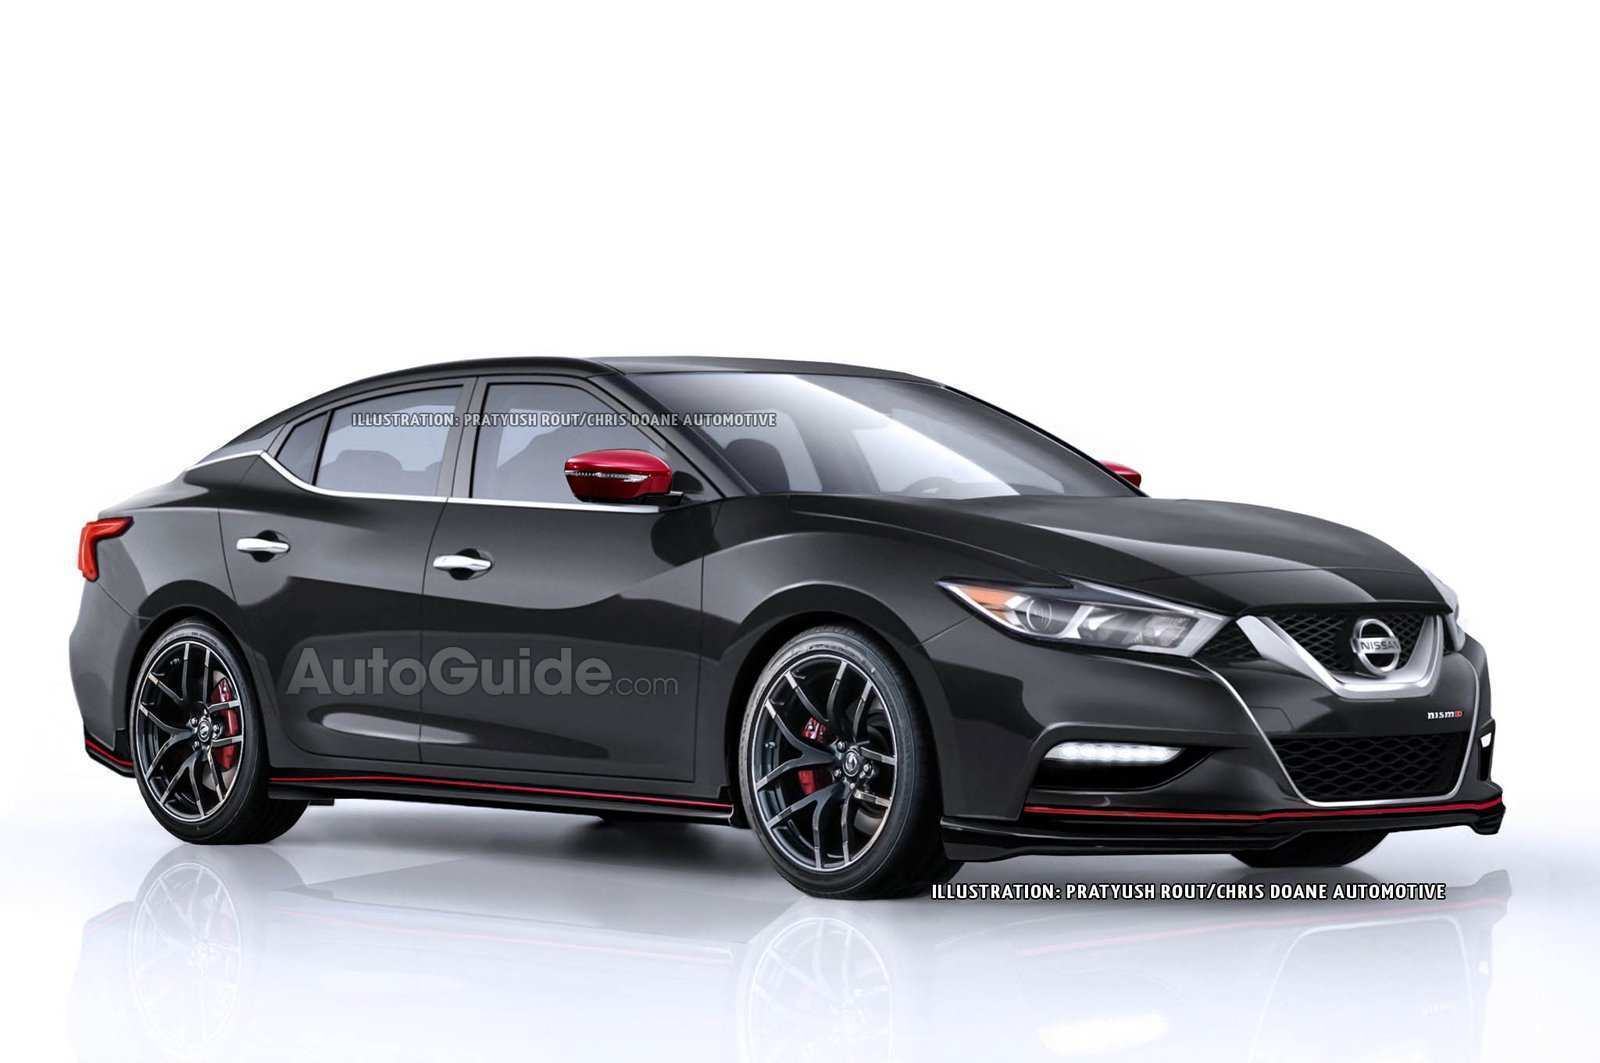 73 The Best 2020 Nissan Maxima Nismo Redesign And Review